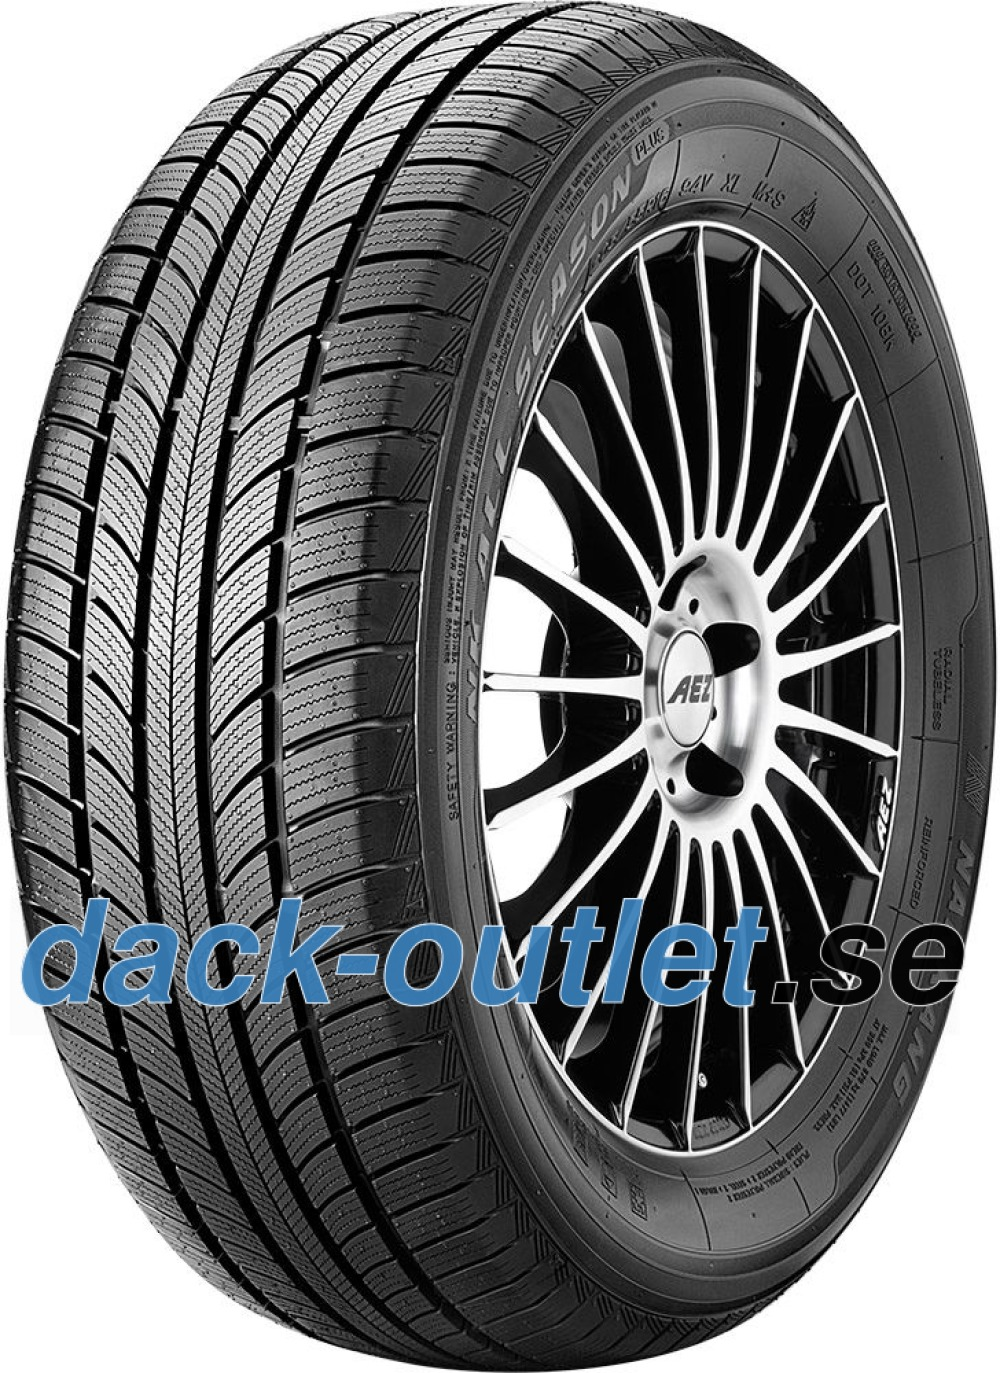 Nankang All Season Plus N-607+ ( 225/55 R17 97V )